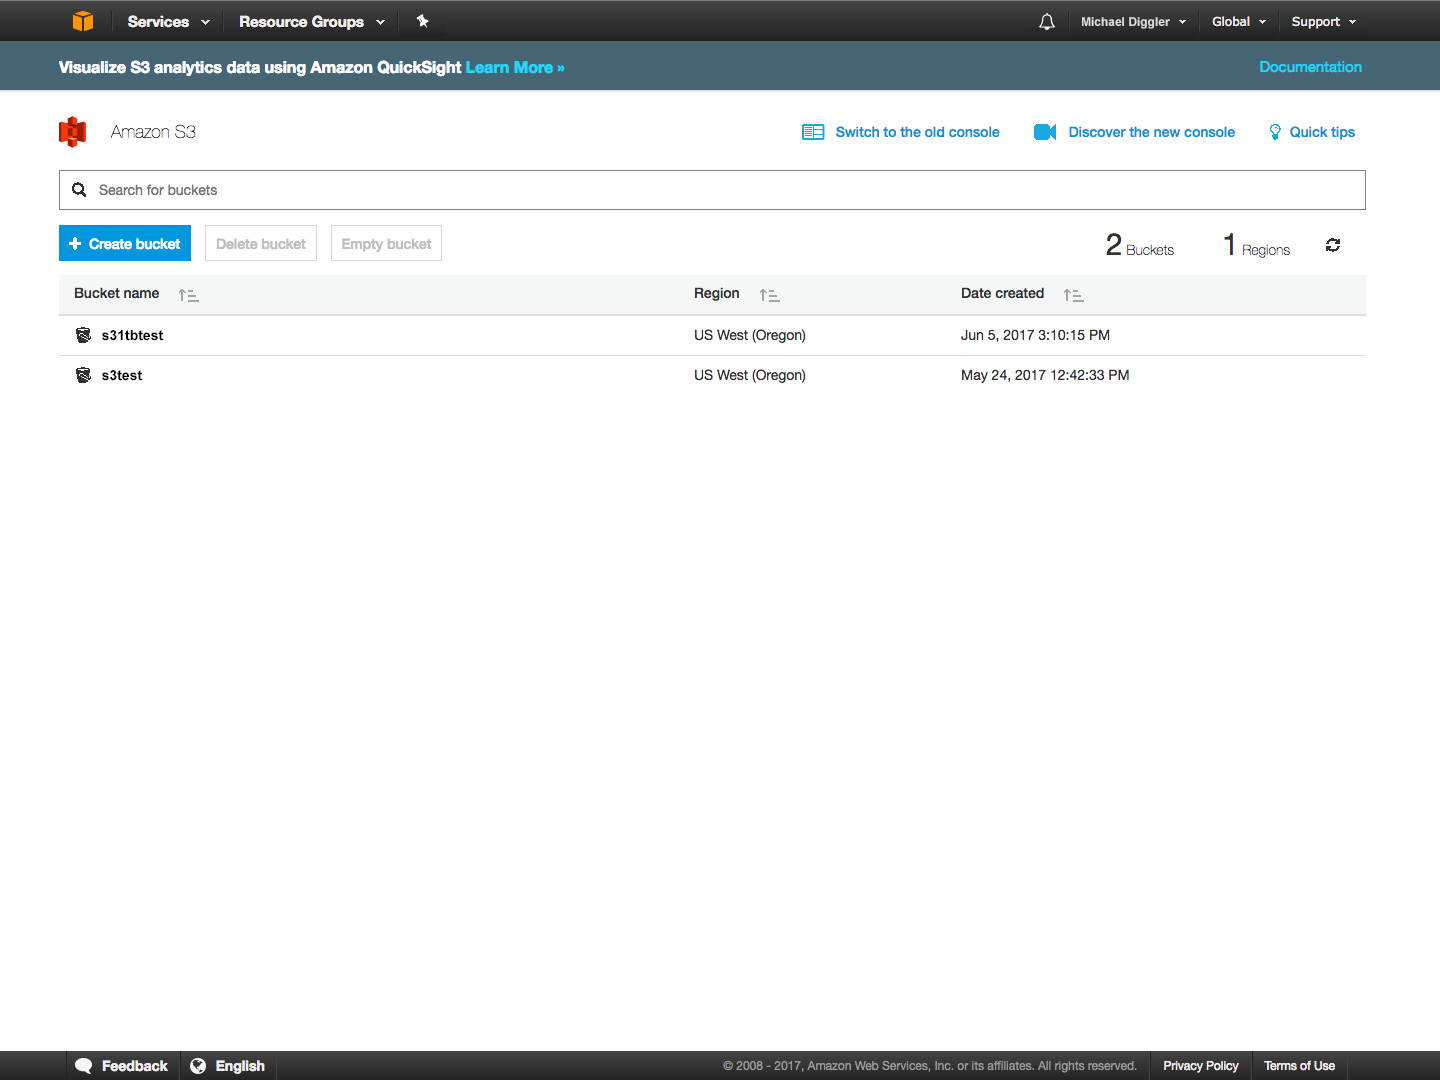 Amazon S3 cloud storage buckets screenshot